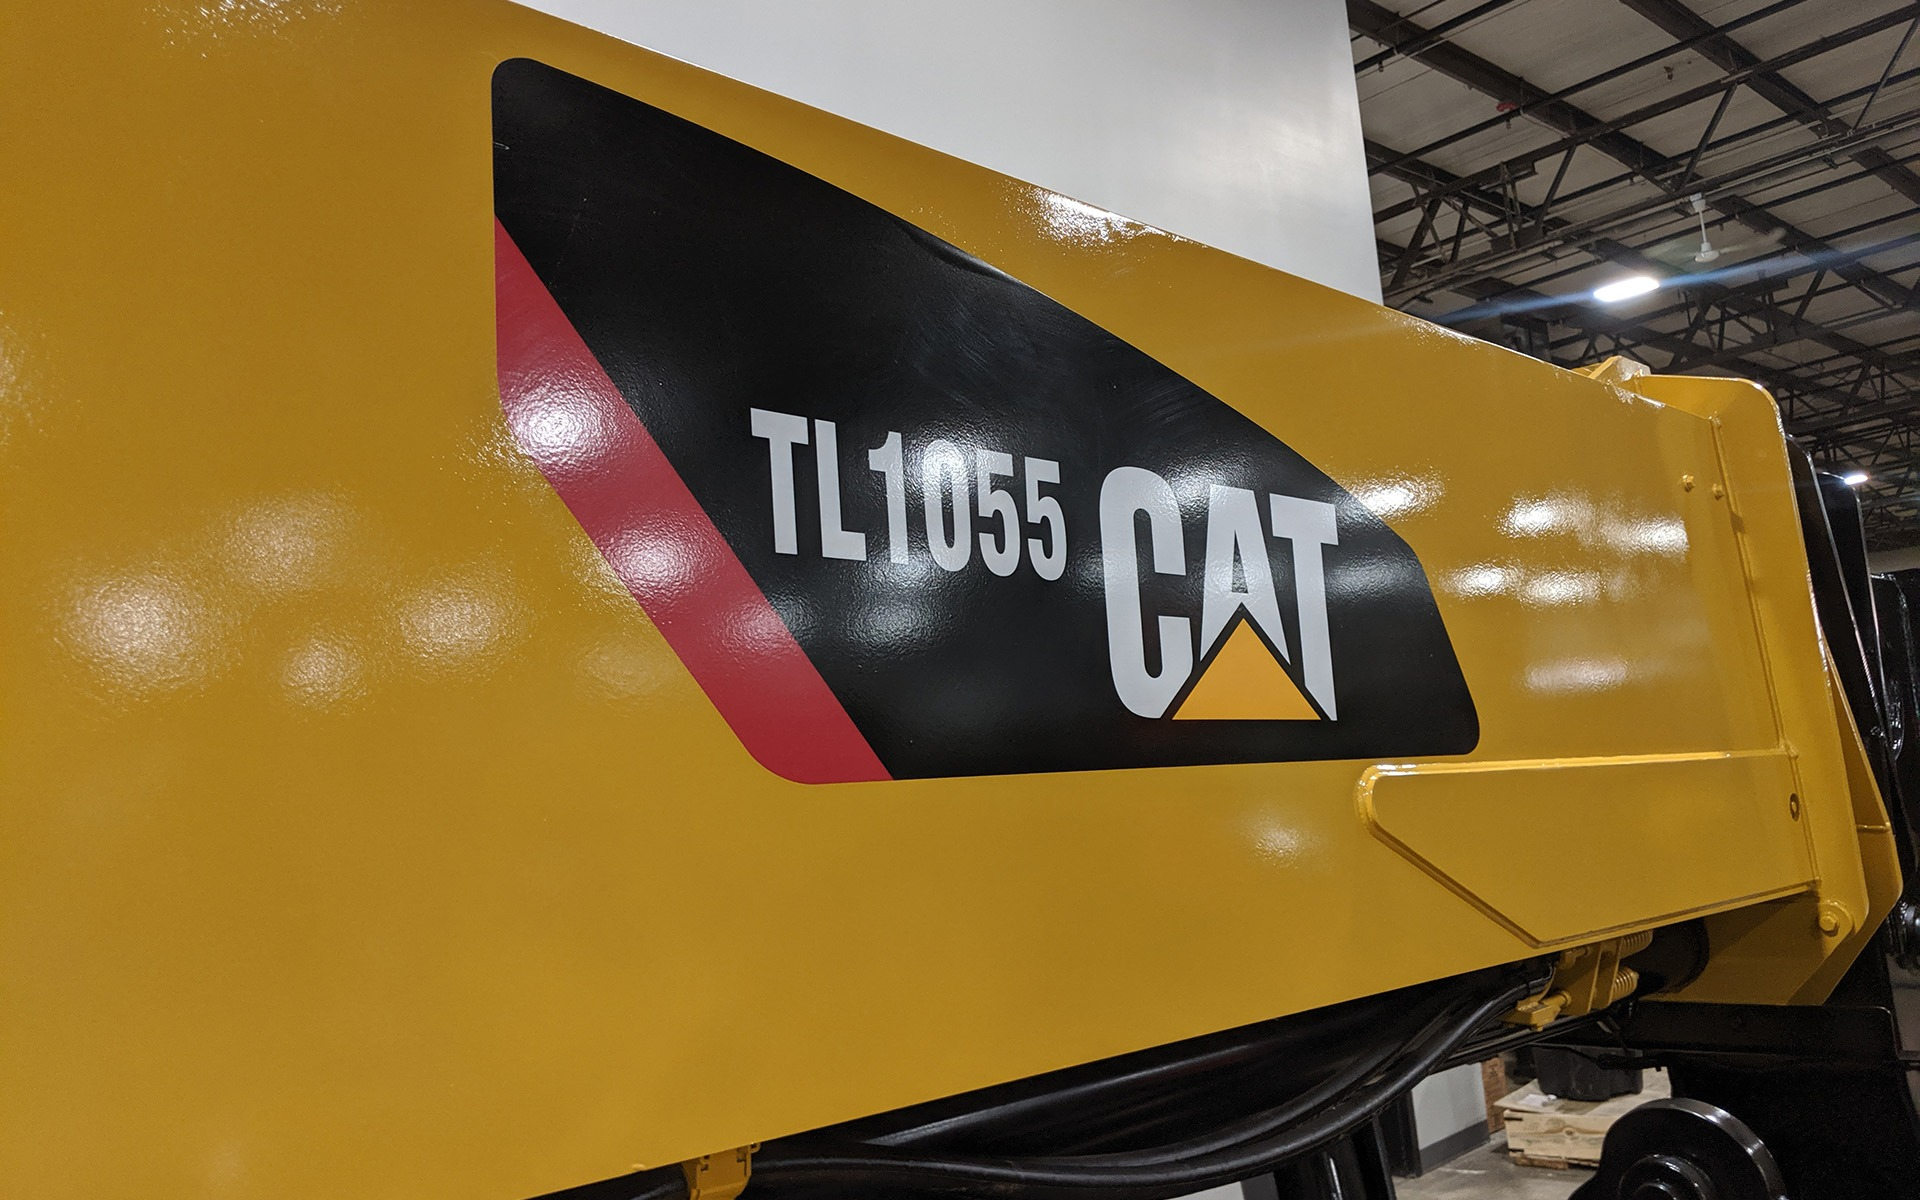 Used 2012 CATERPILLAR TL1055C  | Cary, IL